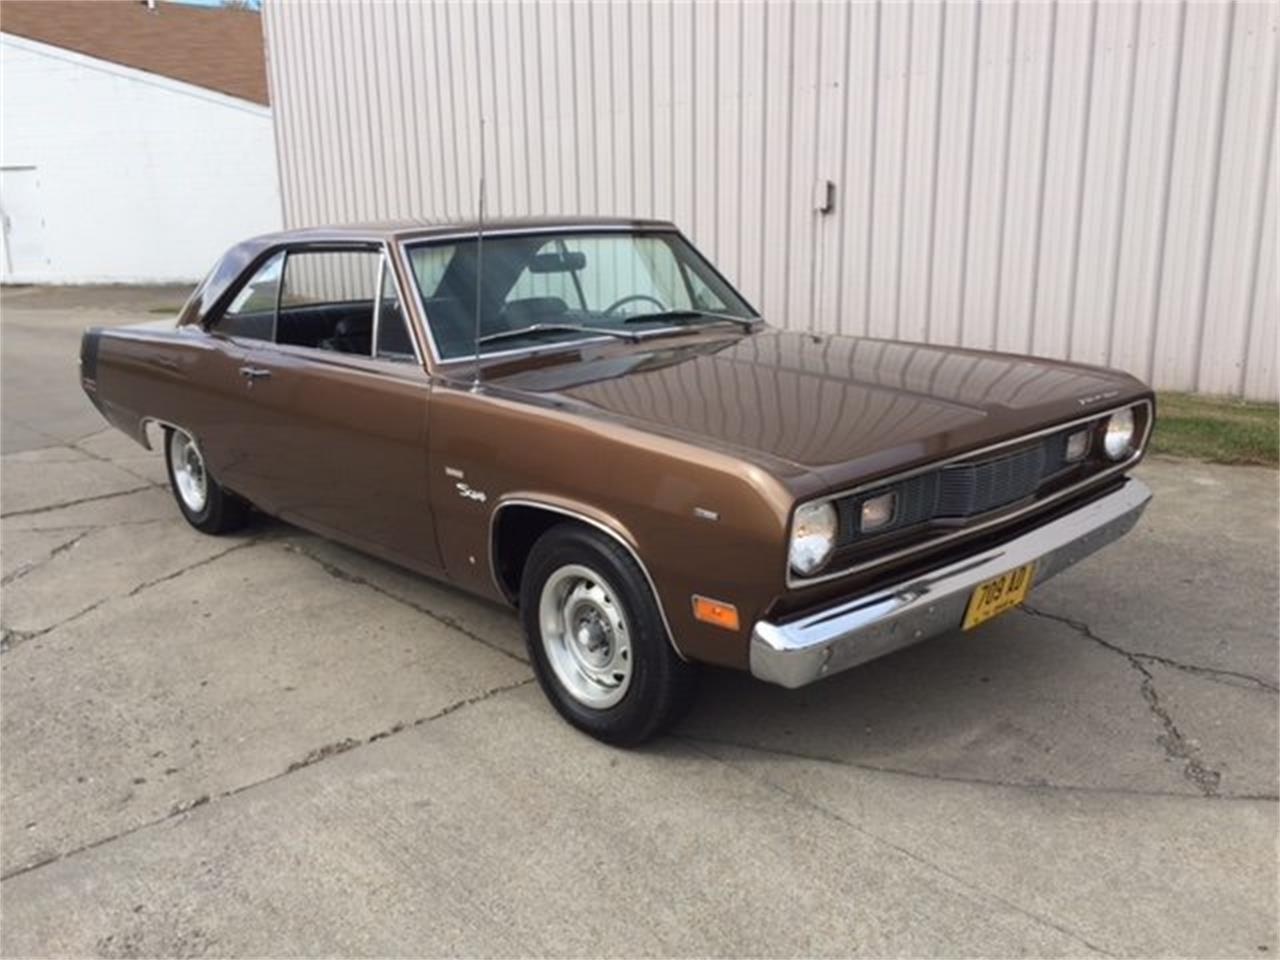 1971 Plymouth Scamp for sale in Milford, OH